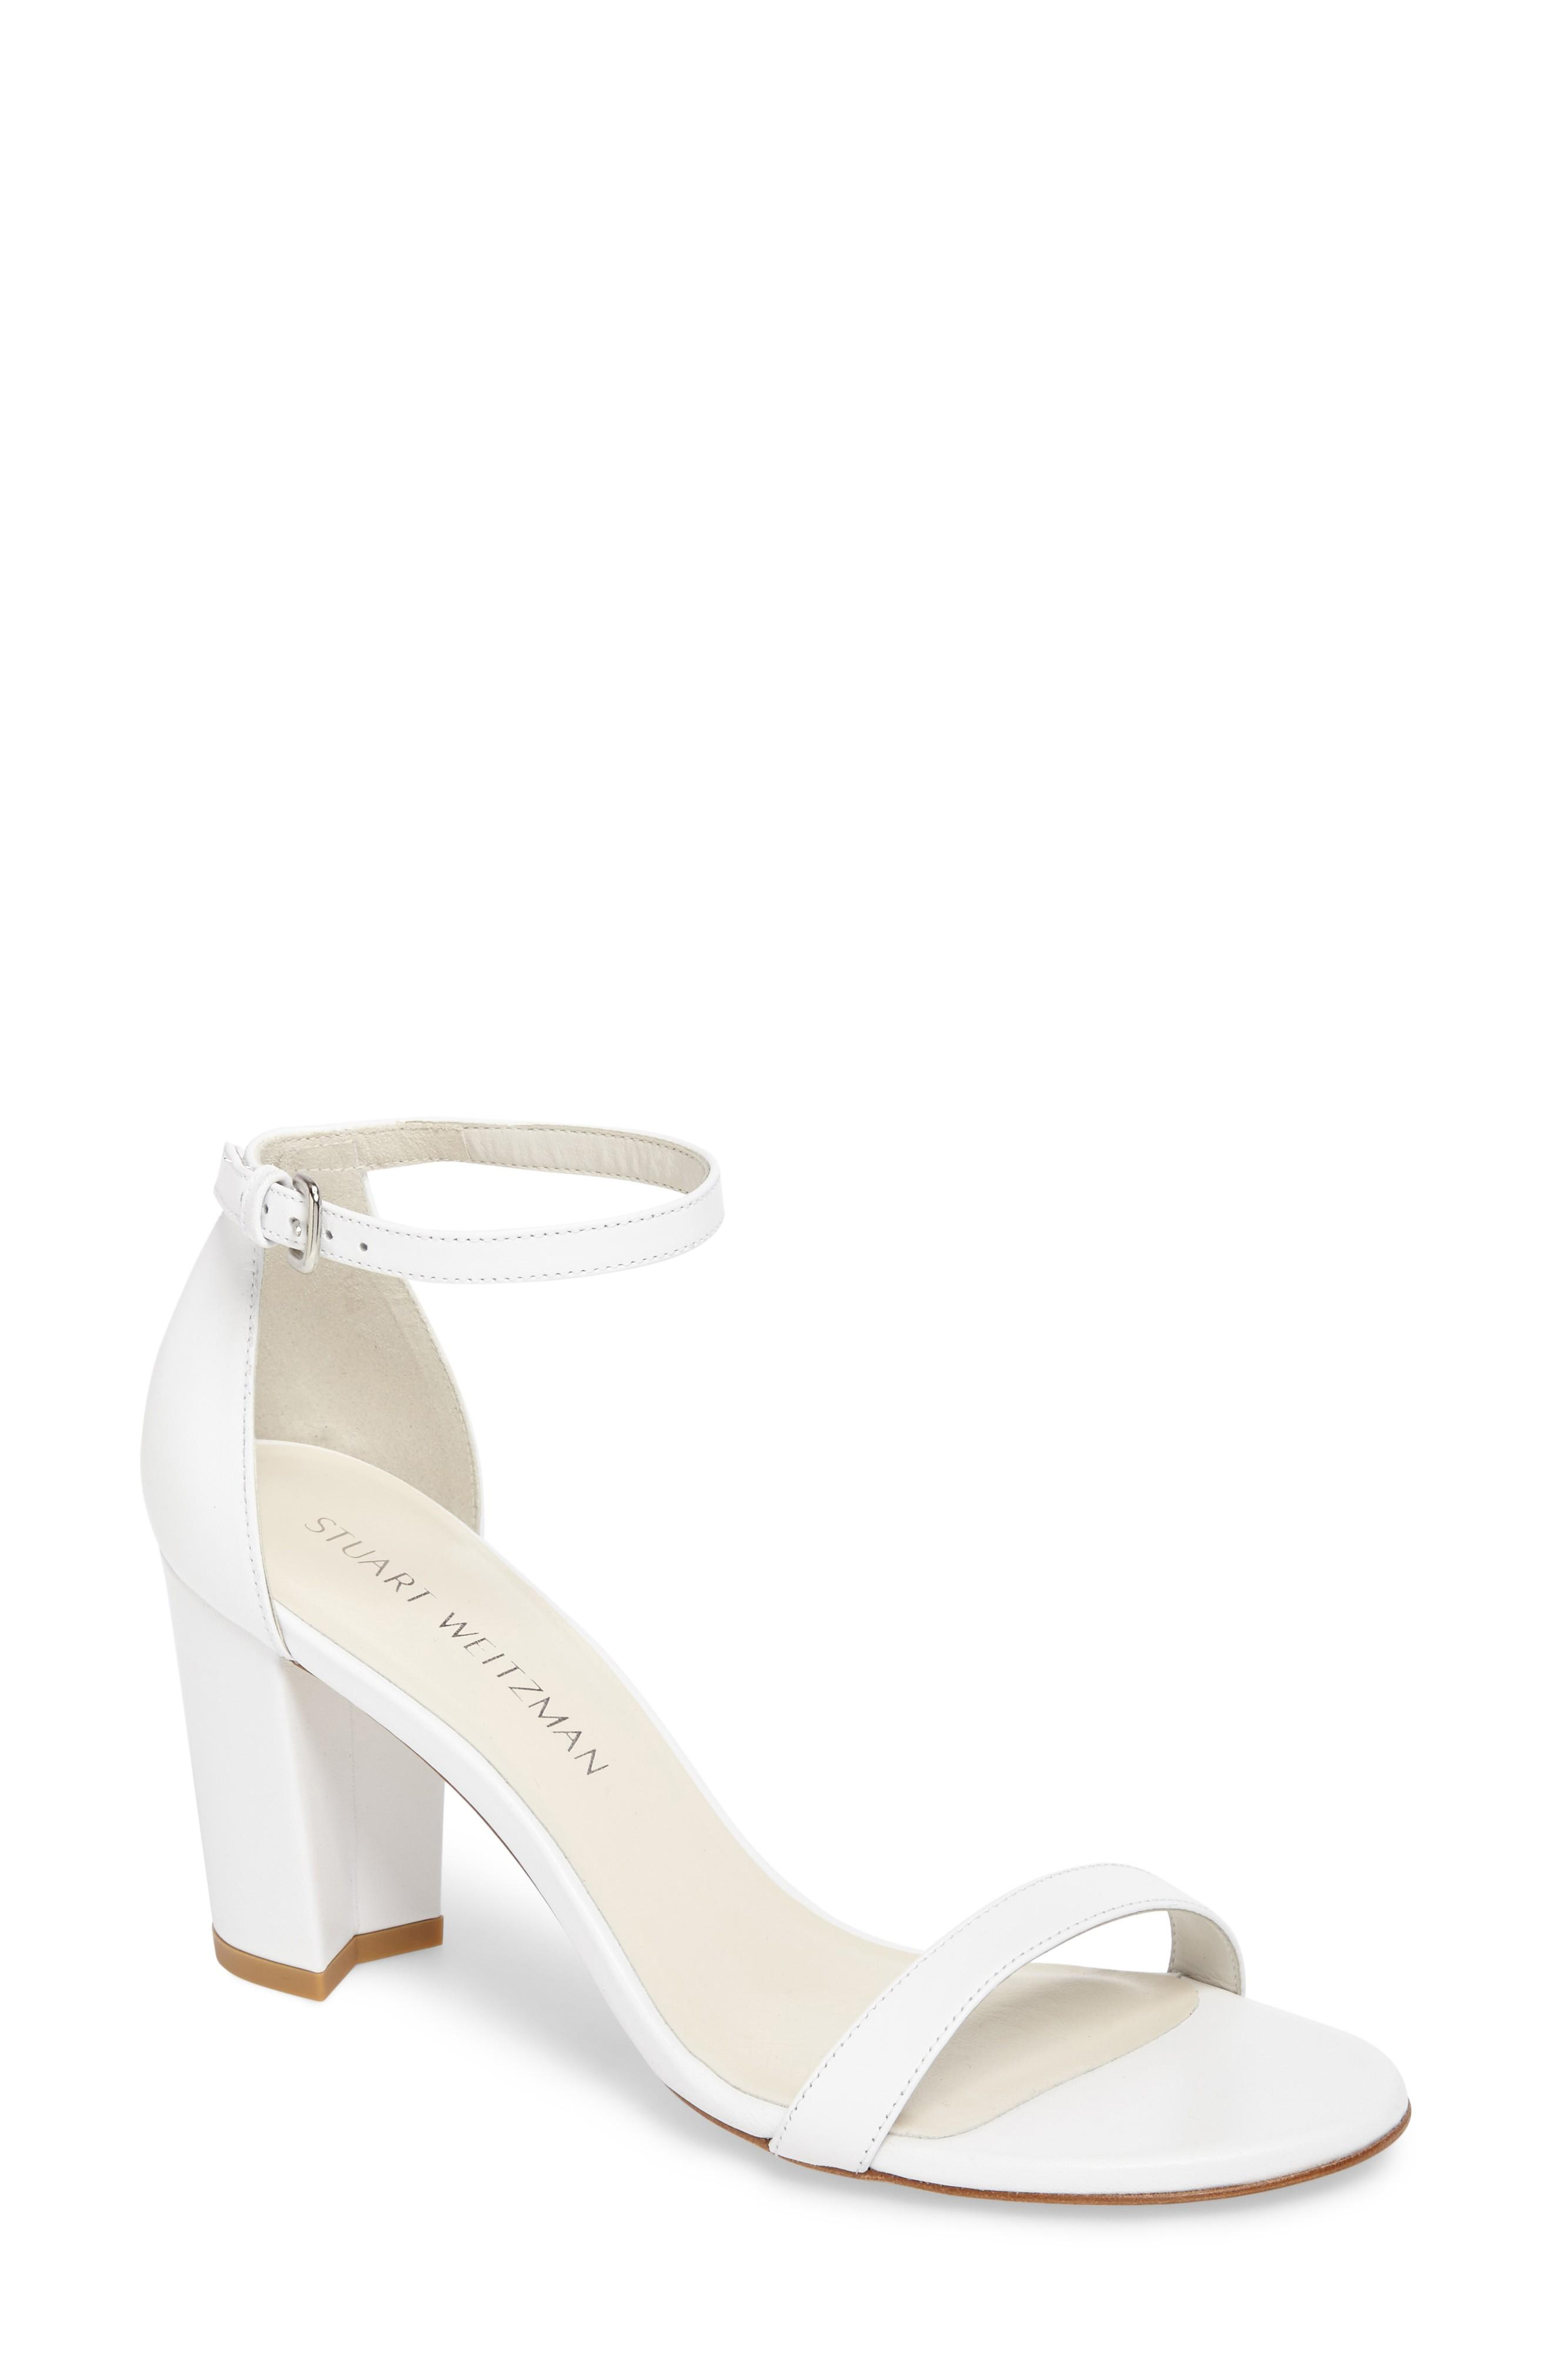 9e25d119be90 Stuart Weitzman Nearlynude Ankle Strap Sandal In White Nappa